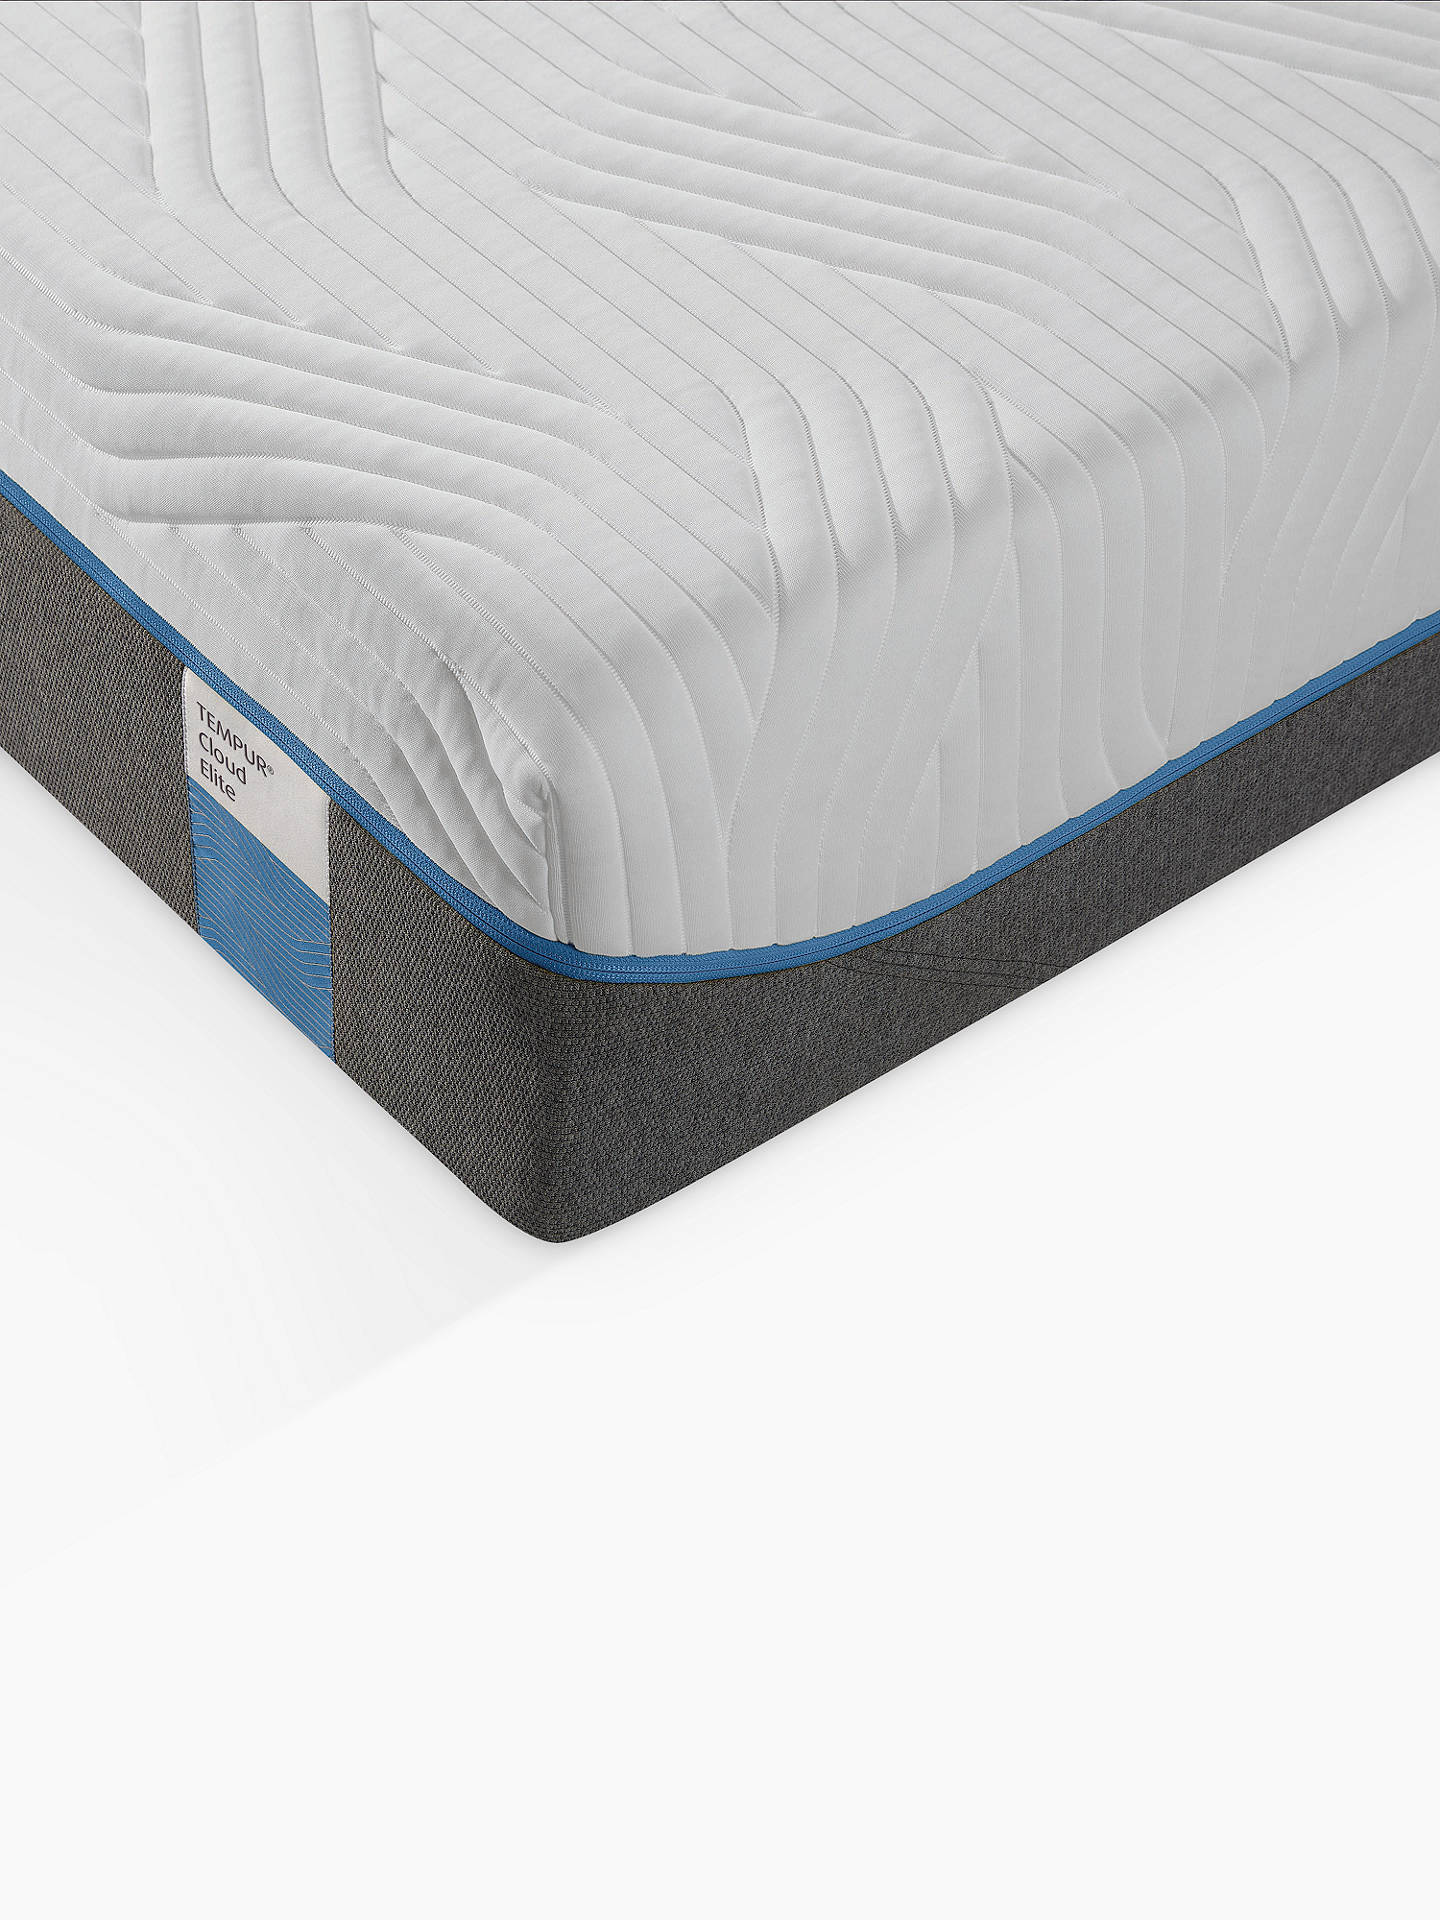 BuyTempur Cloud Elite 25 Memory Foam Mattress, Soft, Super King Size Online at johnlewis.com